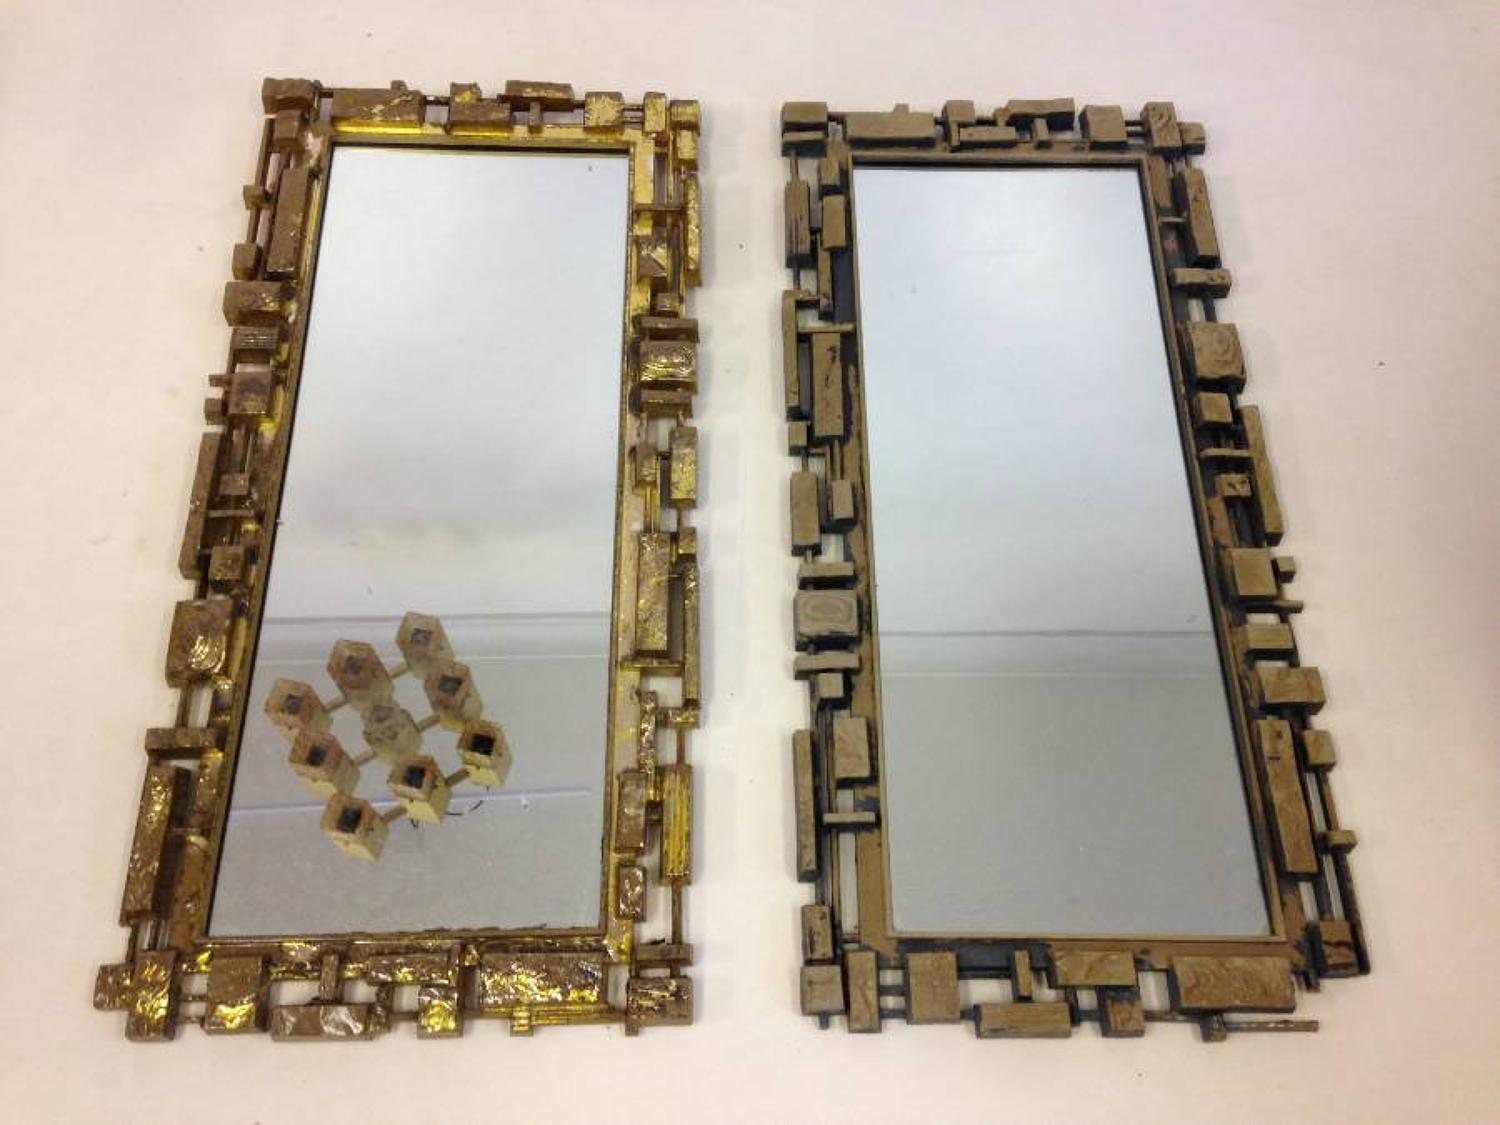 A pair of American Brutalist mirrors